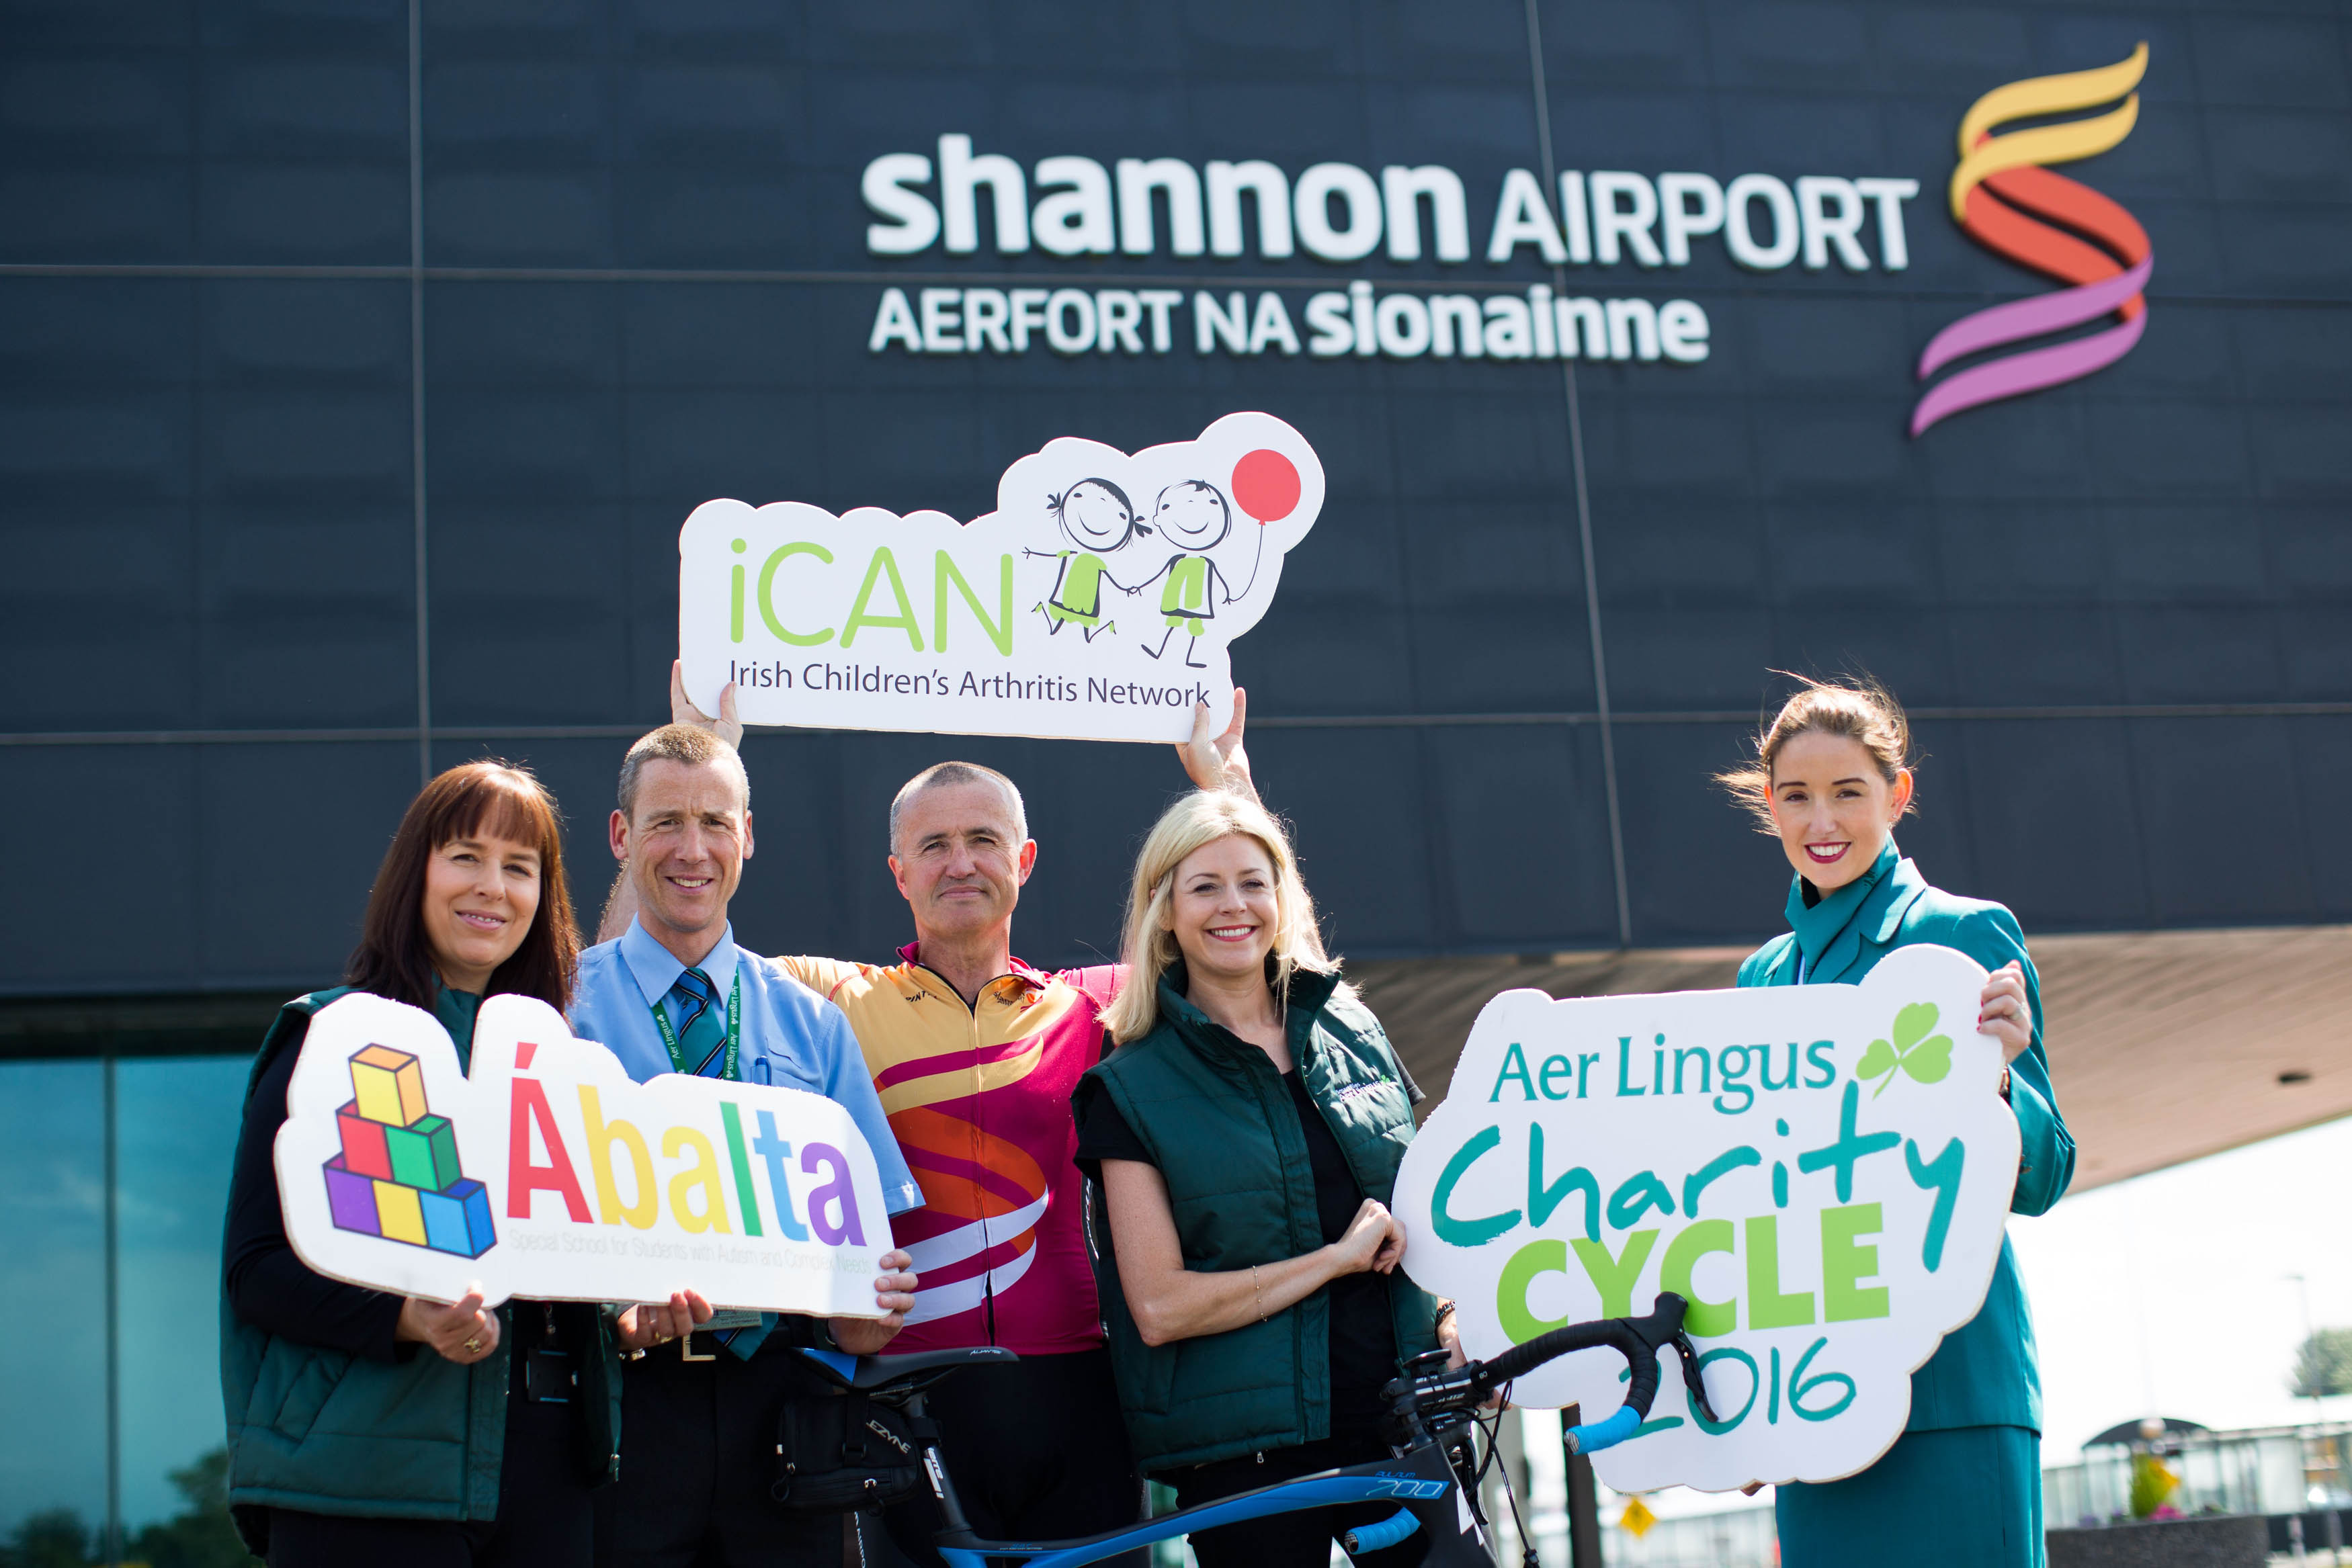 Shannon Airport Aer Lingus Charity Cycle July 2016